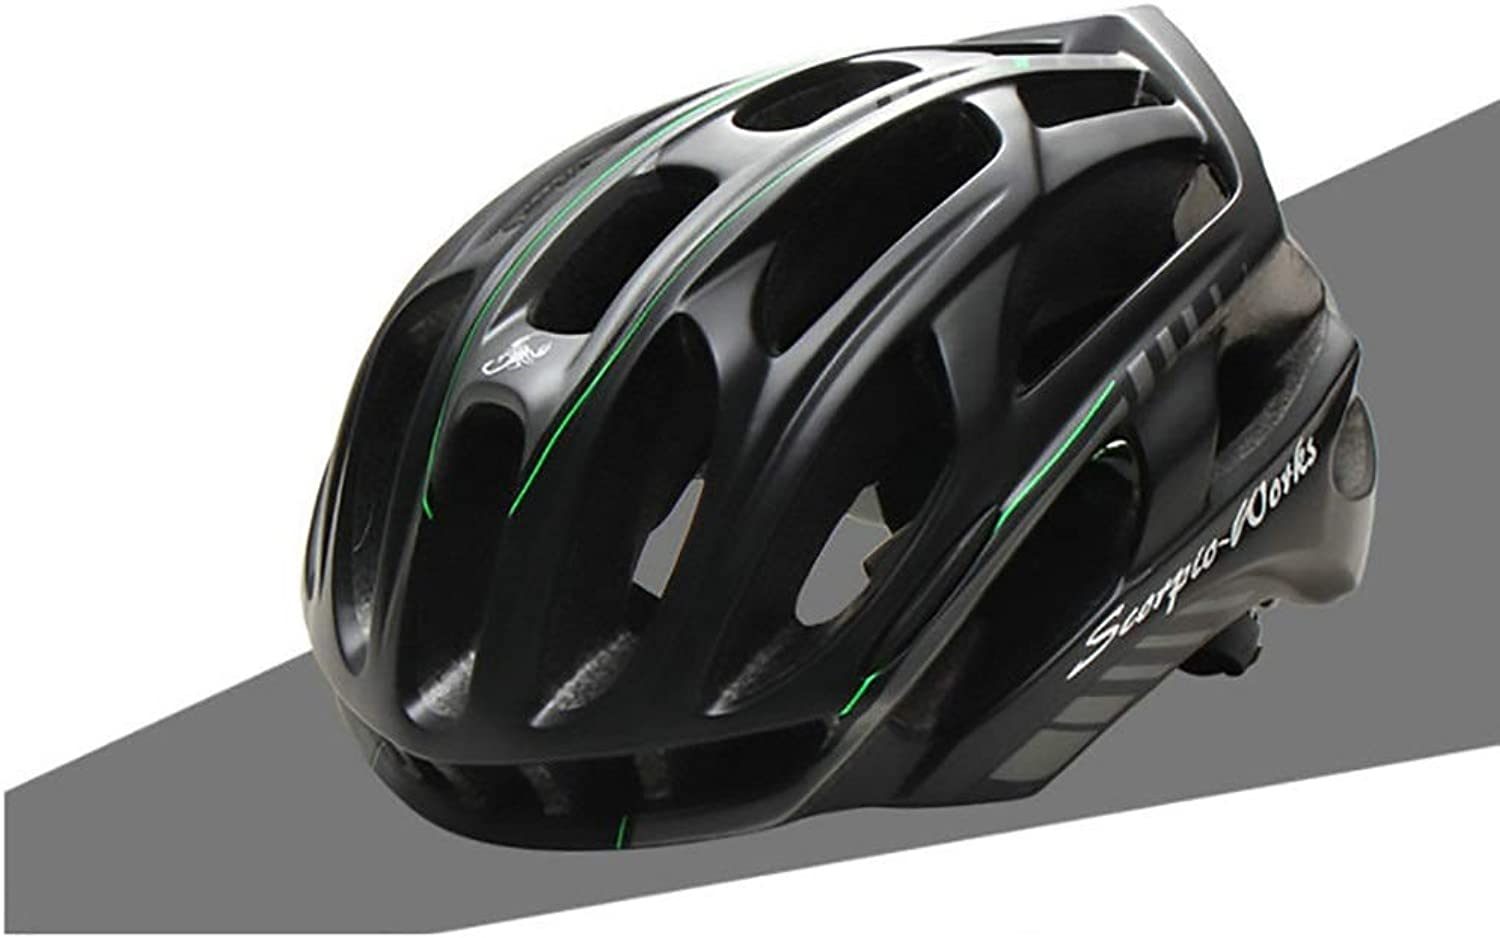 Songlin@yuan Matte PC Case Bicycle Helmet Cycling Helmet Cycling Mountain Bike Safety Helmet Outdoor Cycling Equipment Electric Vehicle Helmet Motorcycle Helmet Predection